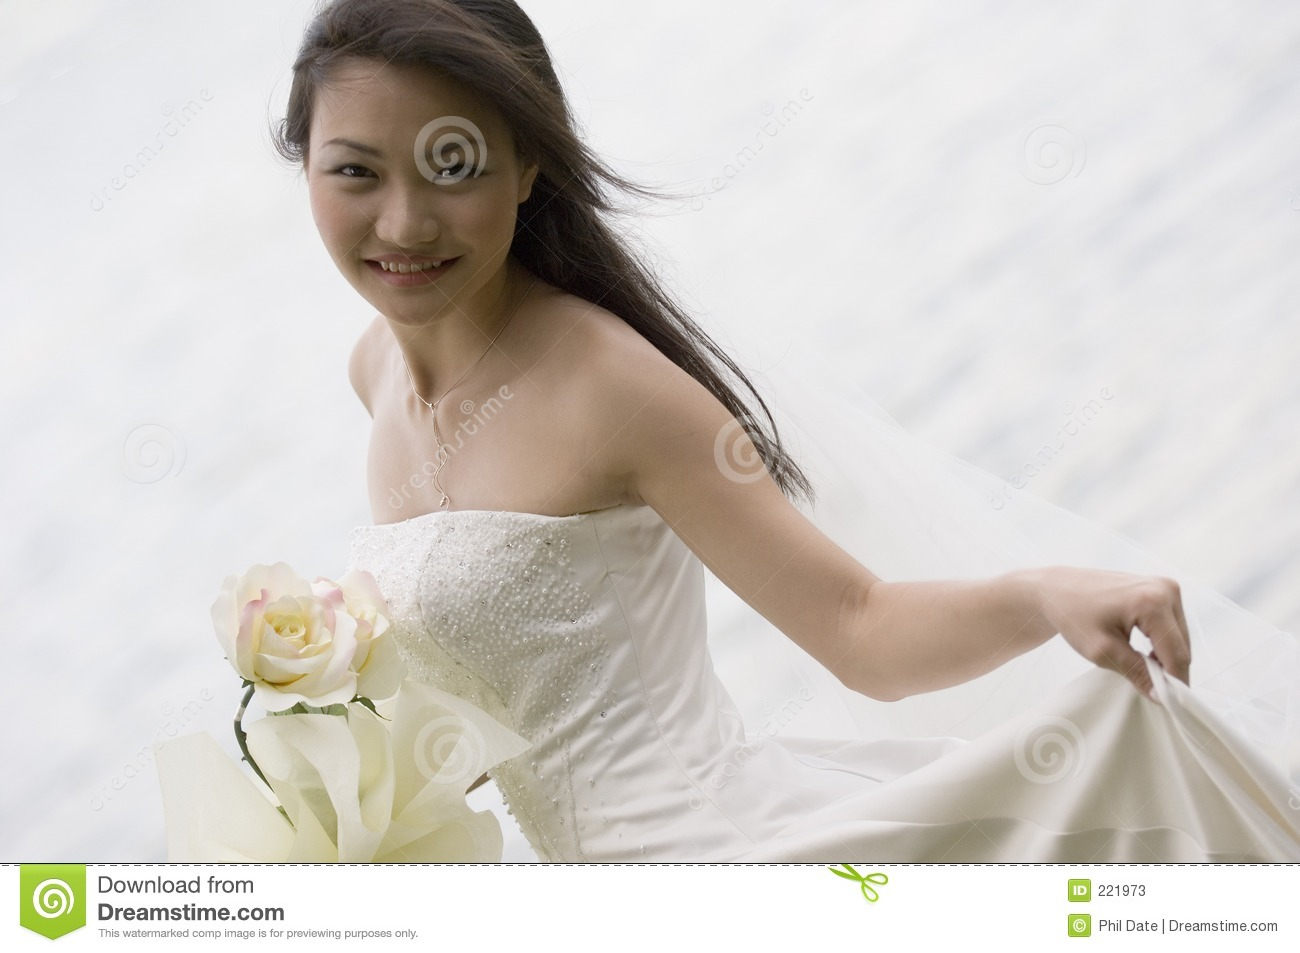 asian single women in mc bride I'm an asian woman and i refuse to ever dating white men and as long as during beauty countdowns white girls are called beauties and asian girls are.